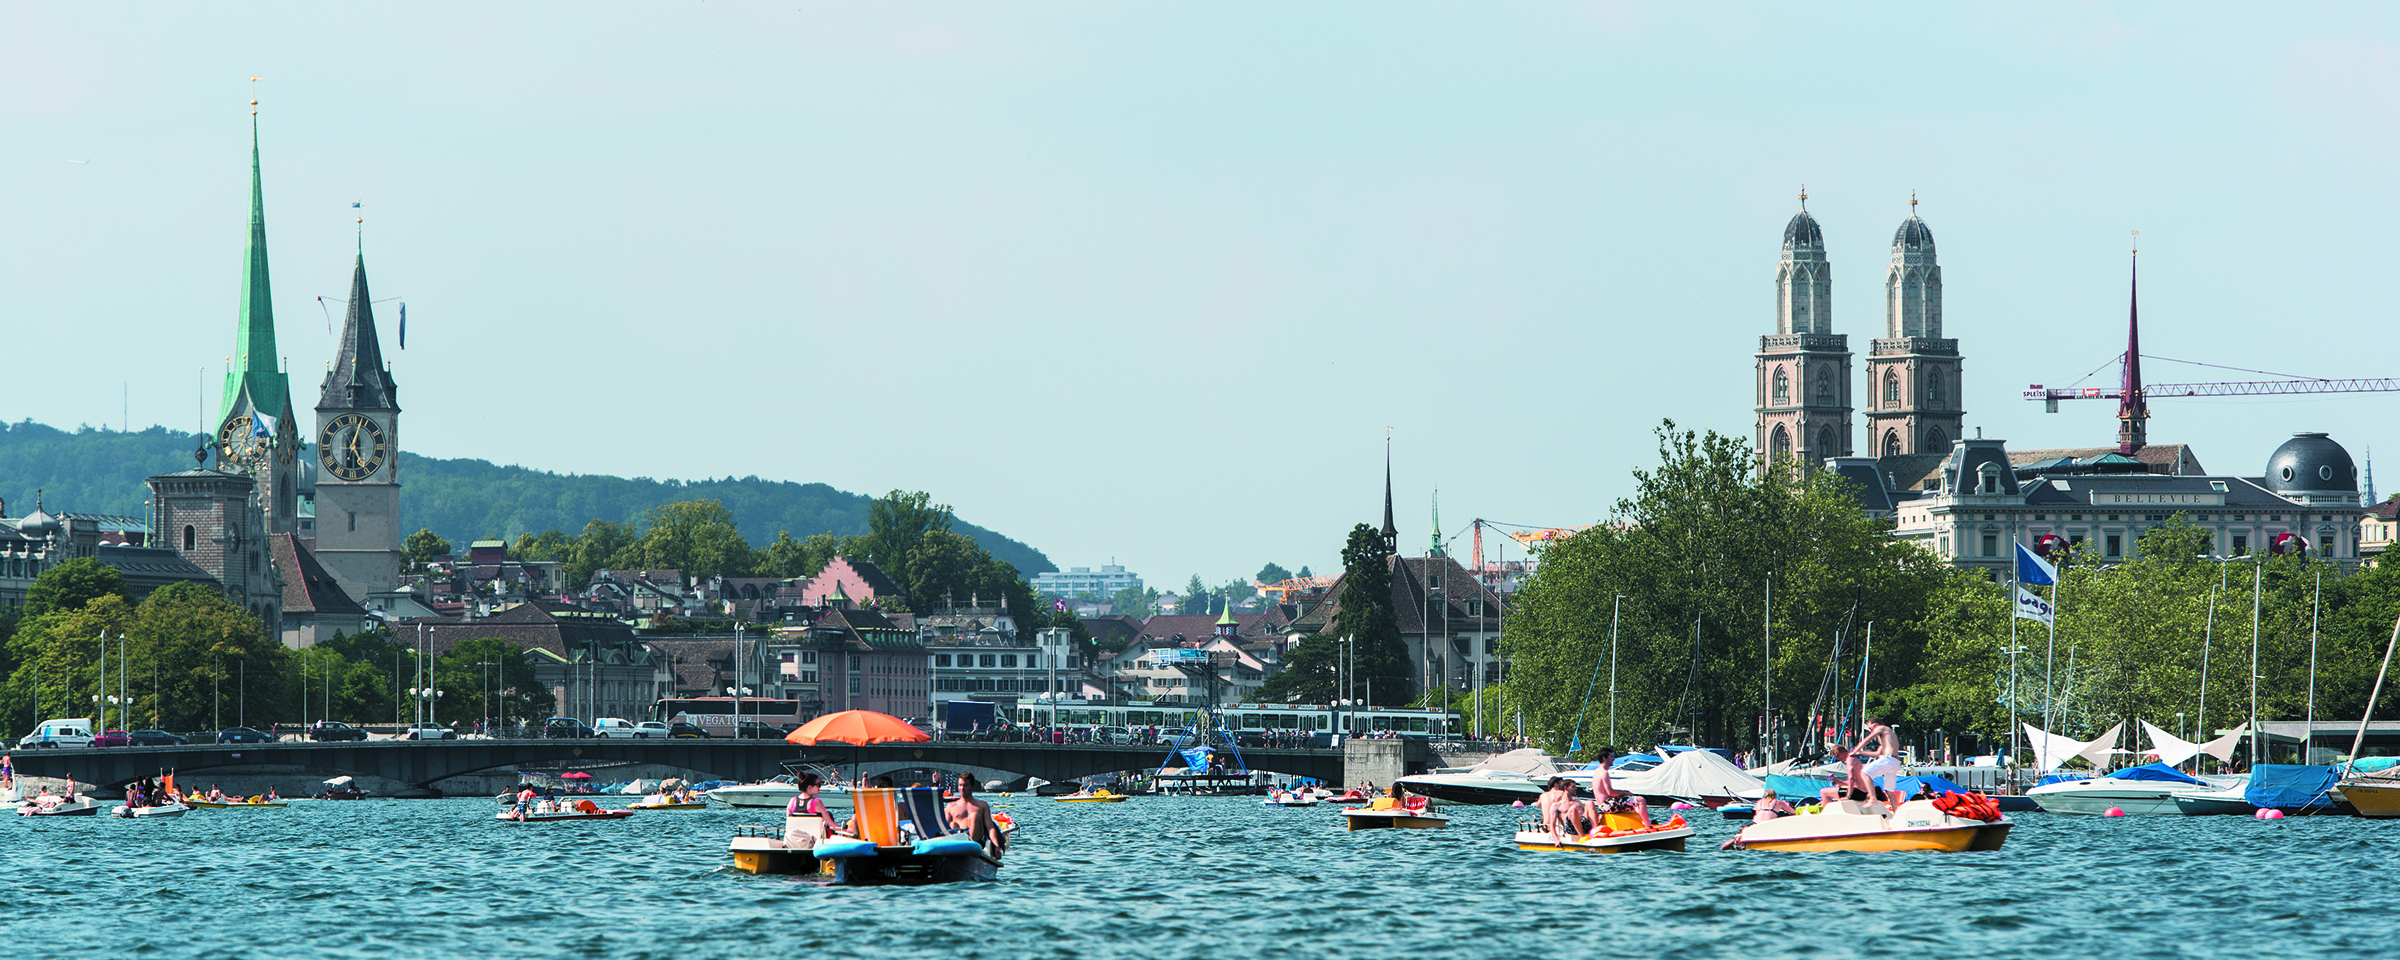 Summer in the city - ZürichCity Hotels Sommer 2020